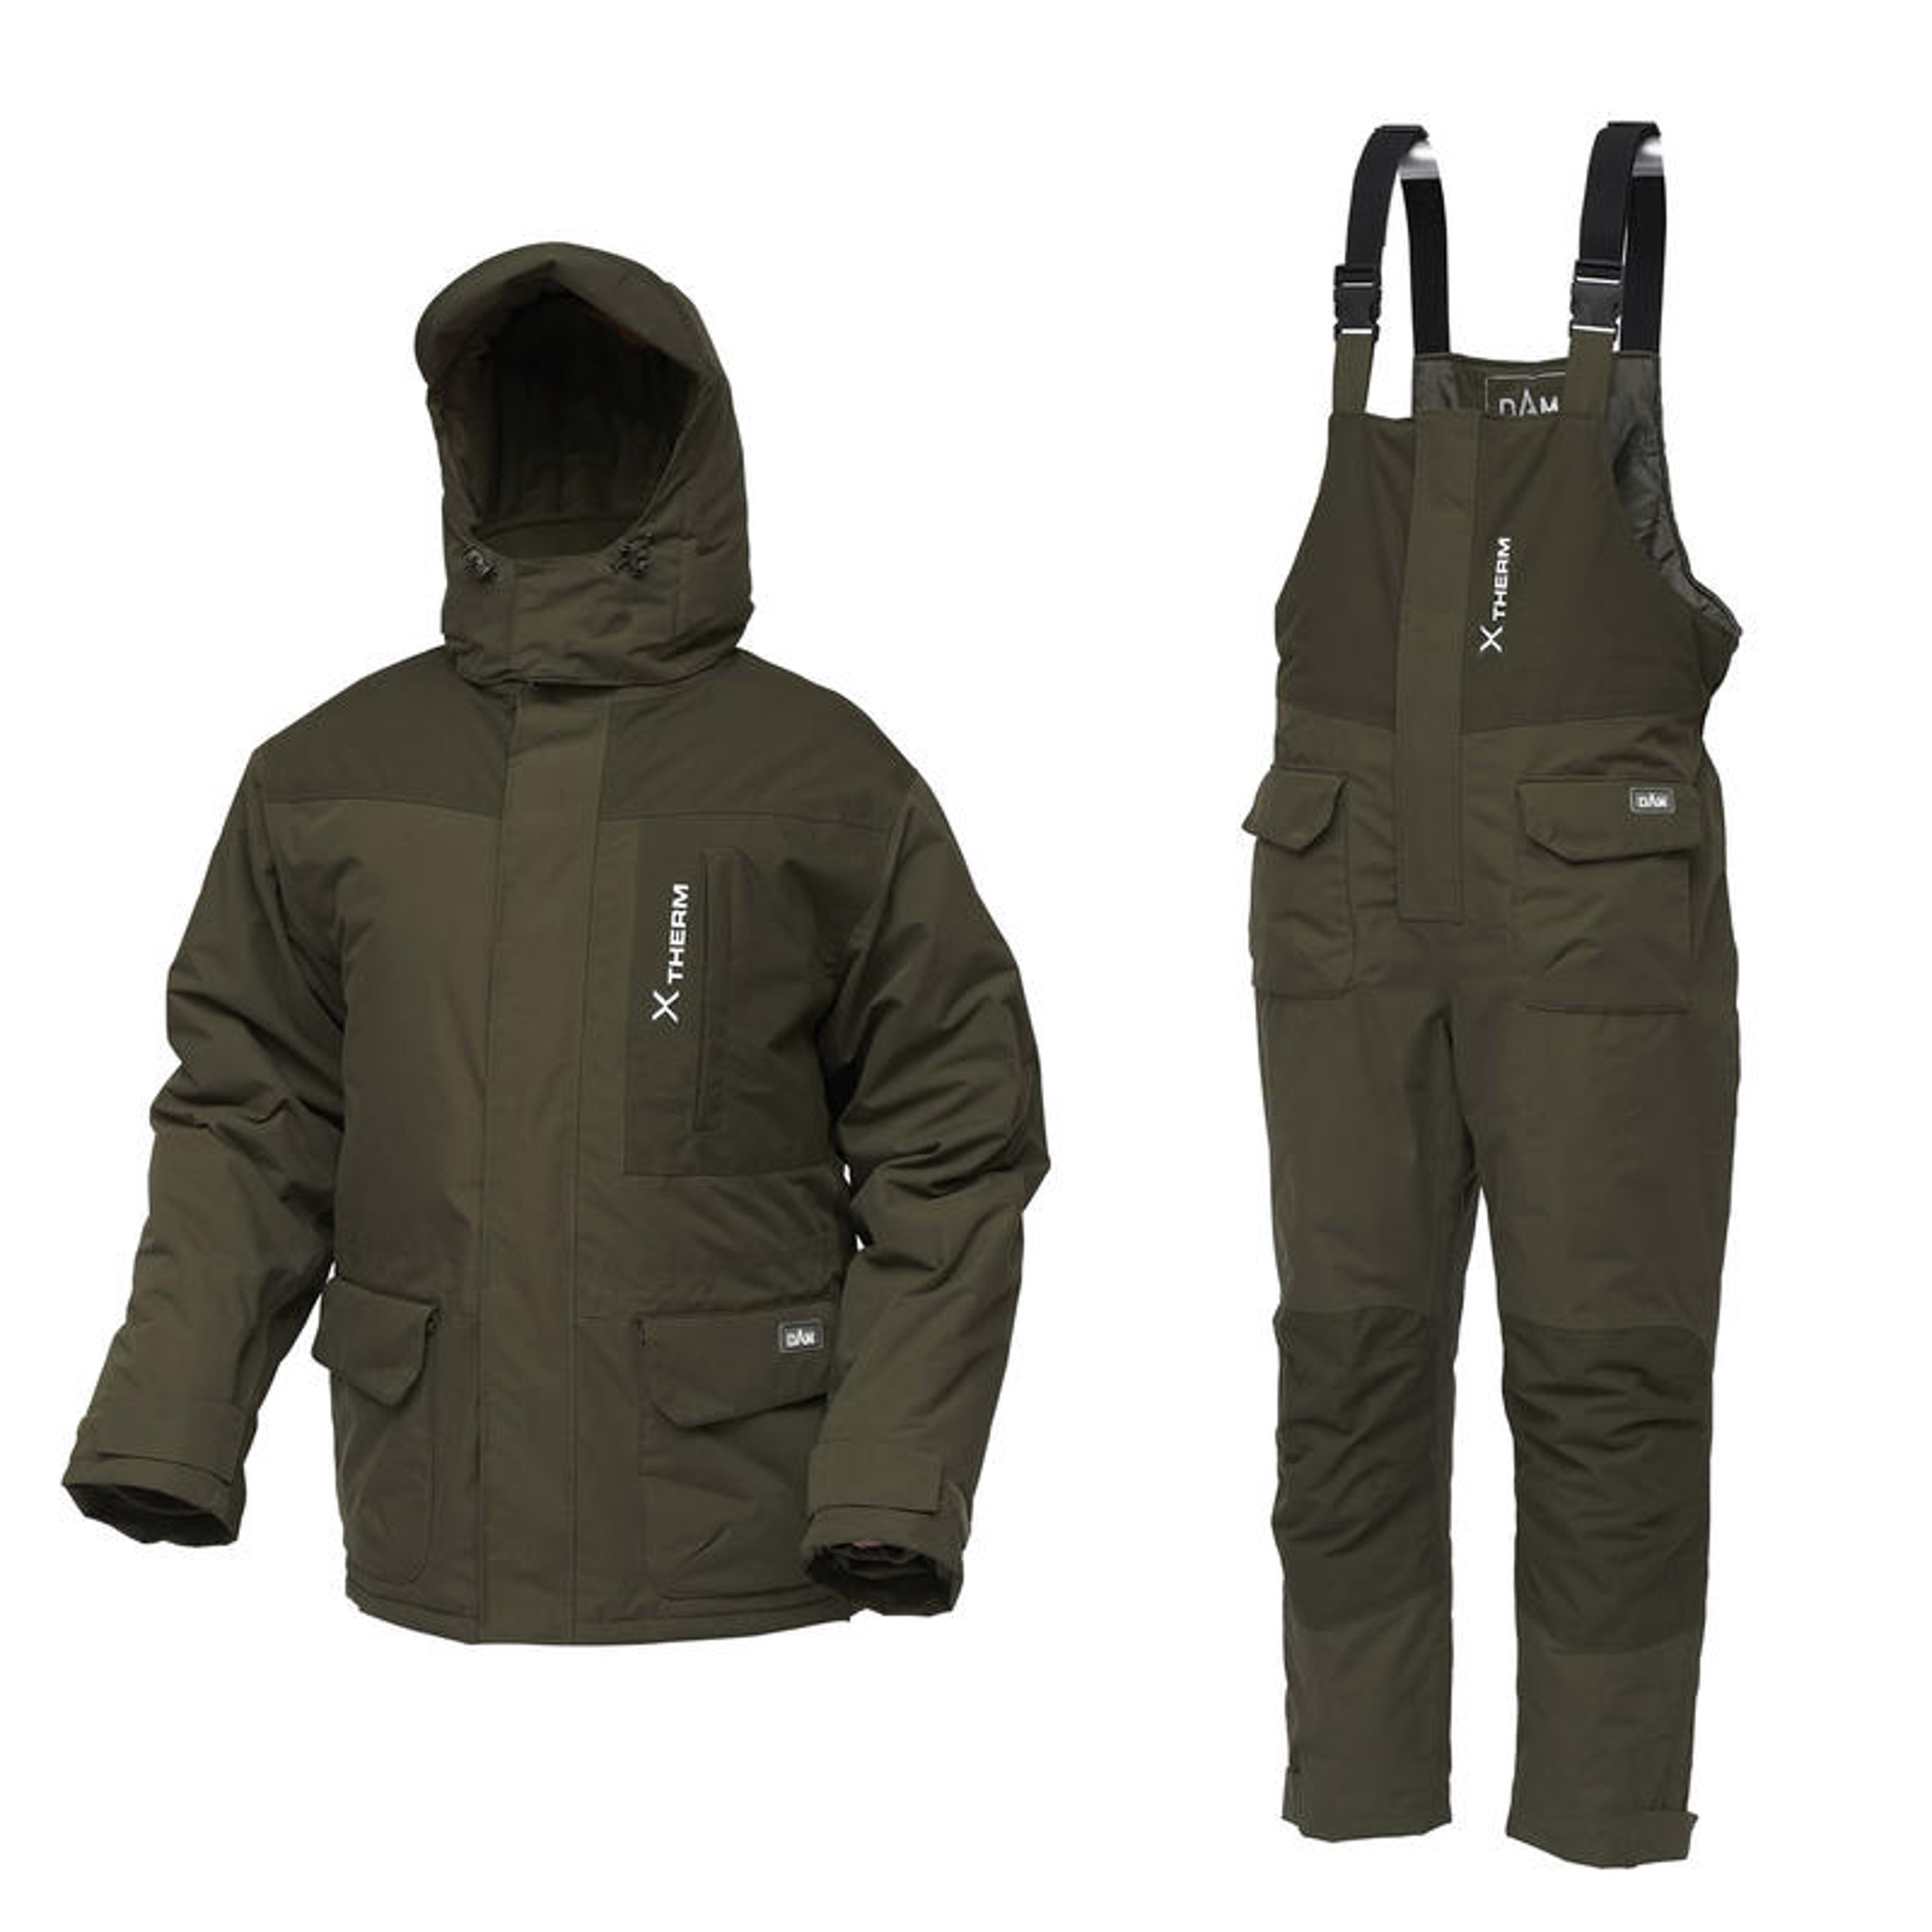 DAM Komplet Xtherm Winter Suit vel. XL